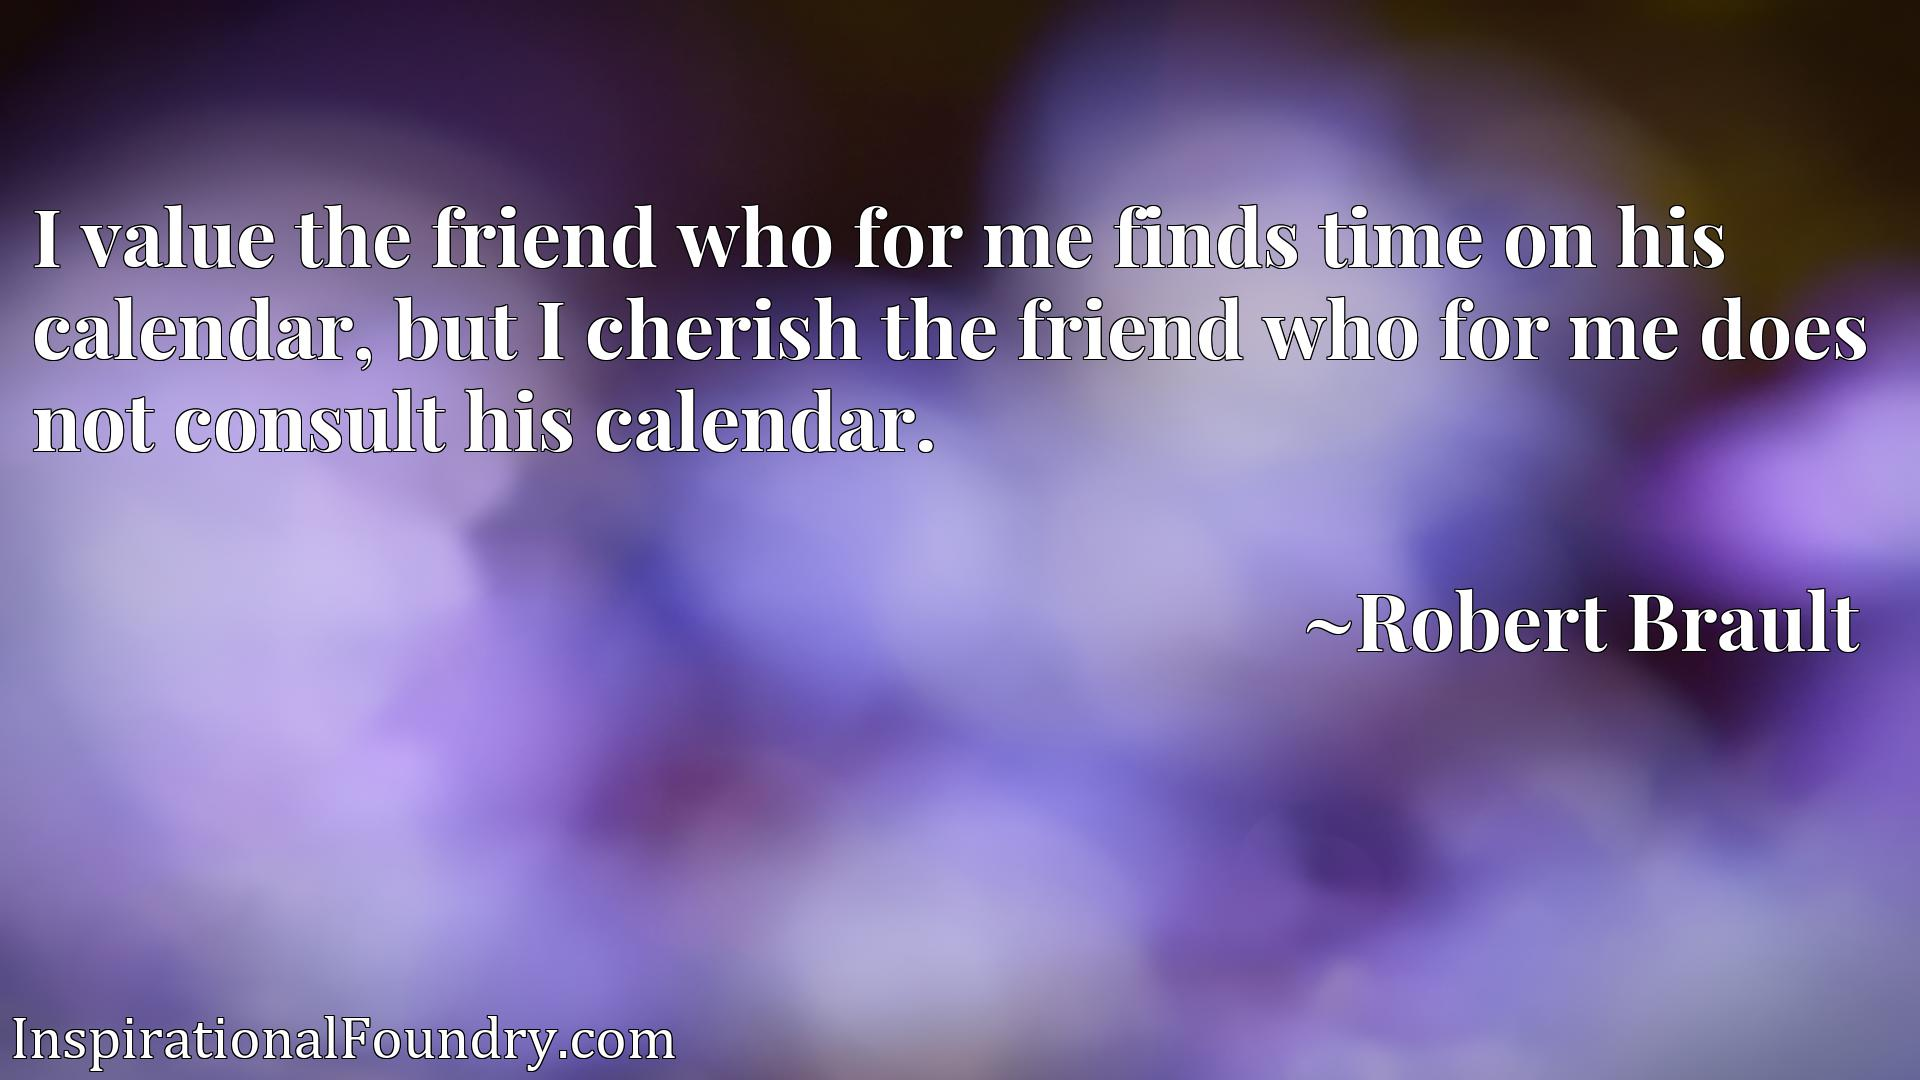 I value the friend who for me finds time on his calendar, but I cherish the friend who for me does not consult his calendar.